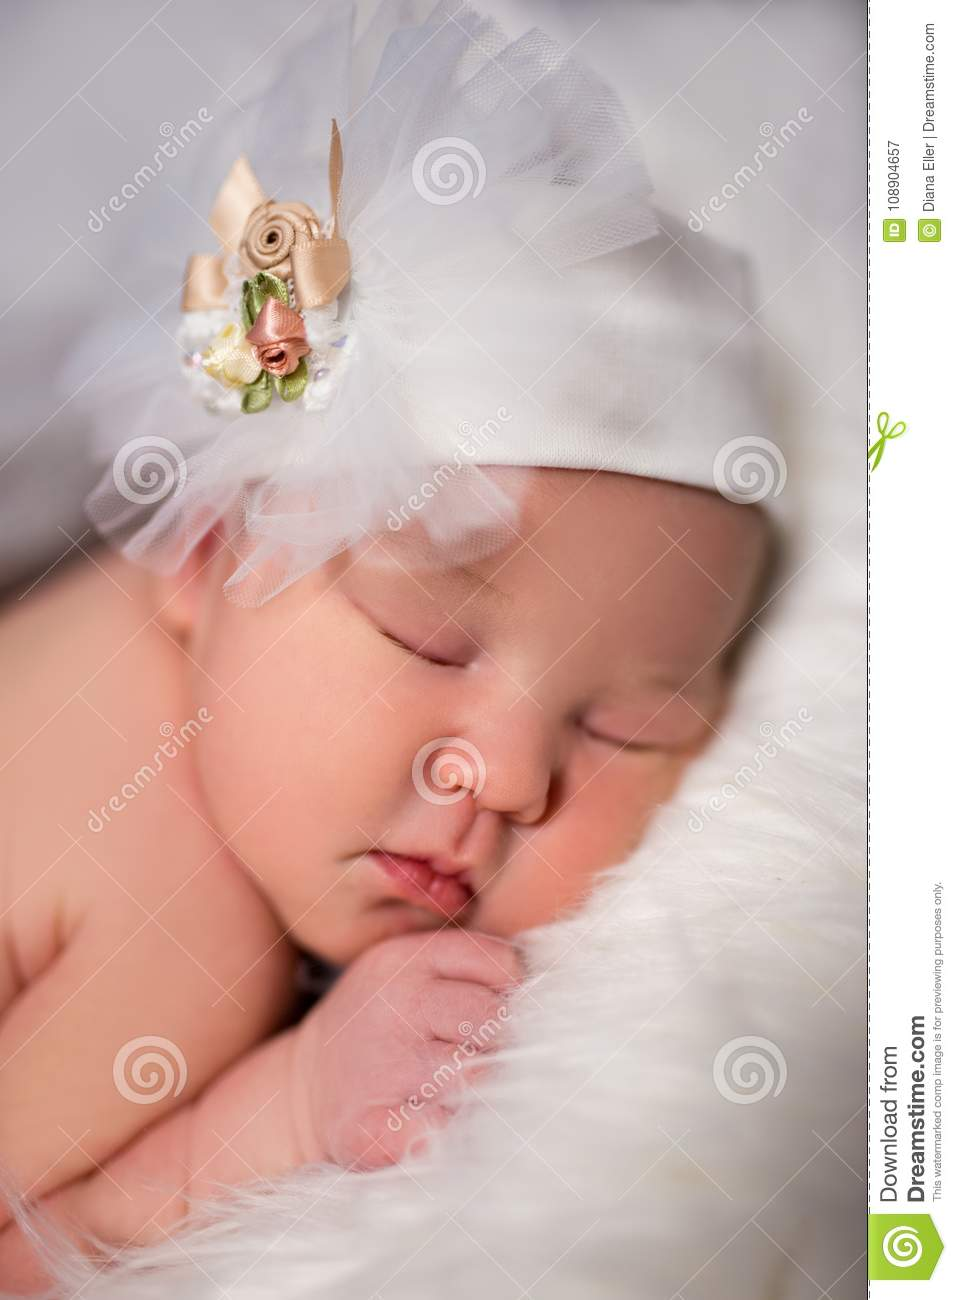 close up of cute sleeping baby in white hat stock image - image of